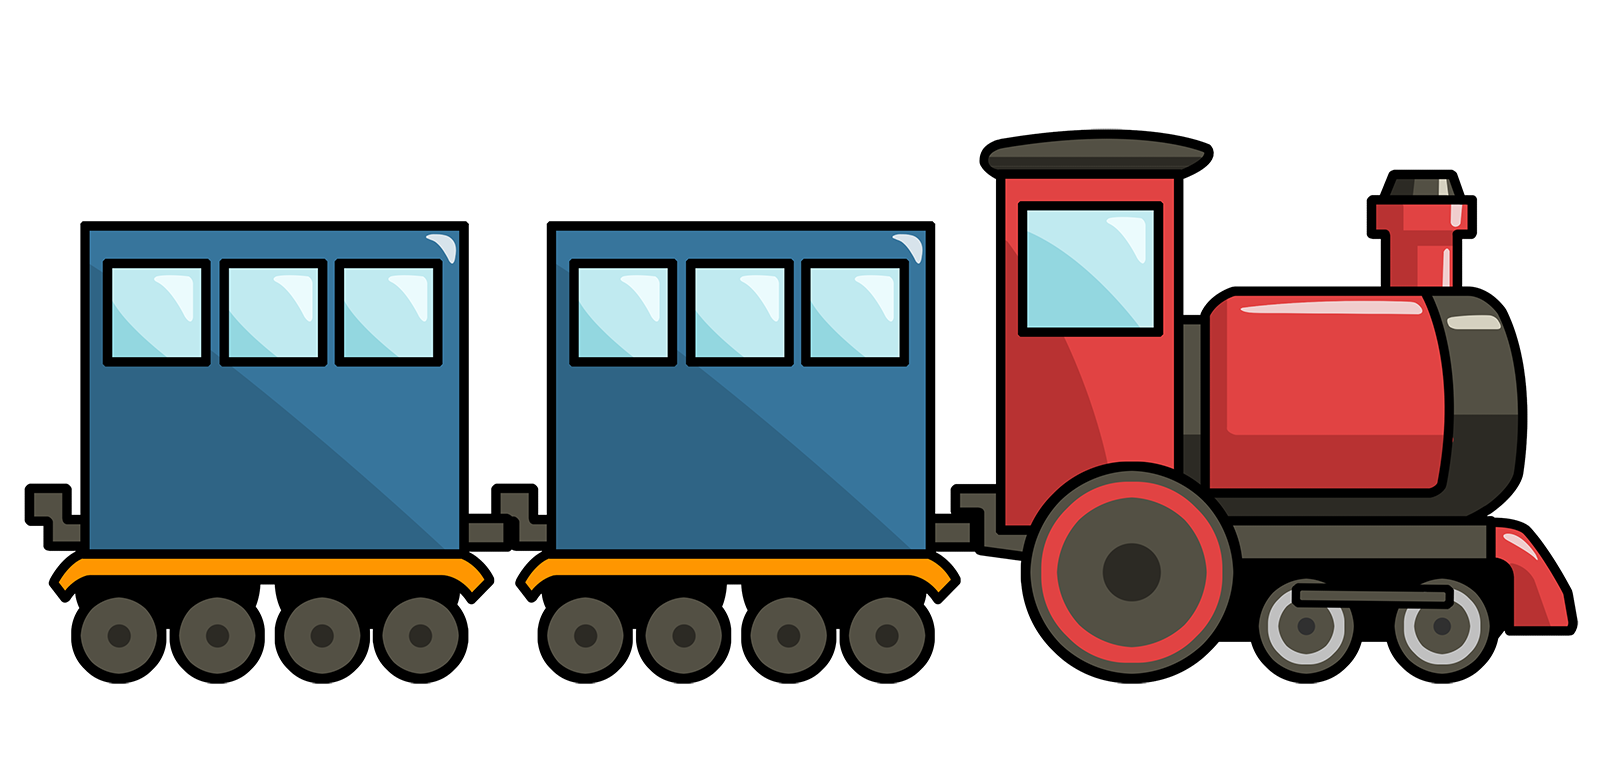 Train Station Clipart | Free download on ClipArtMag